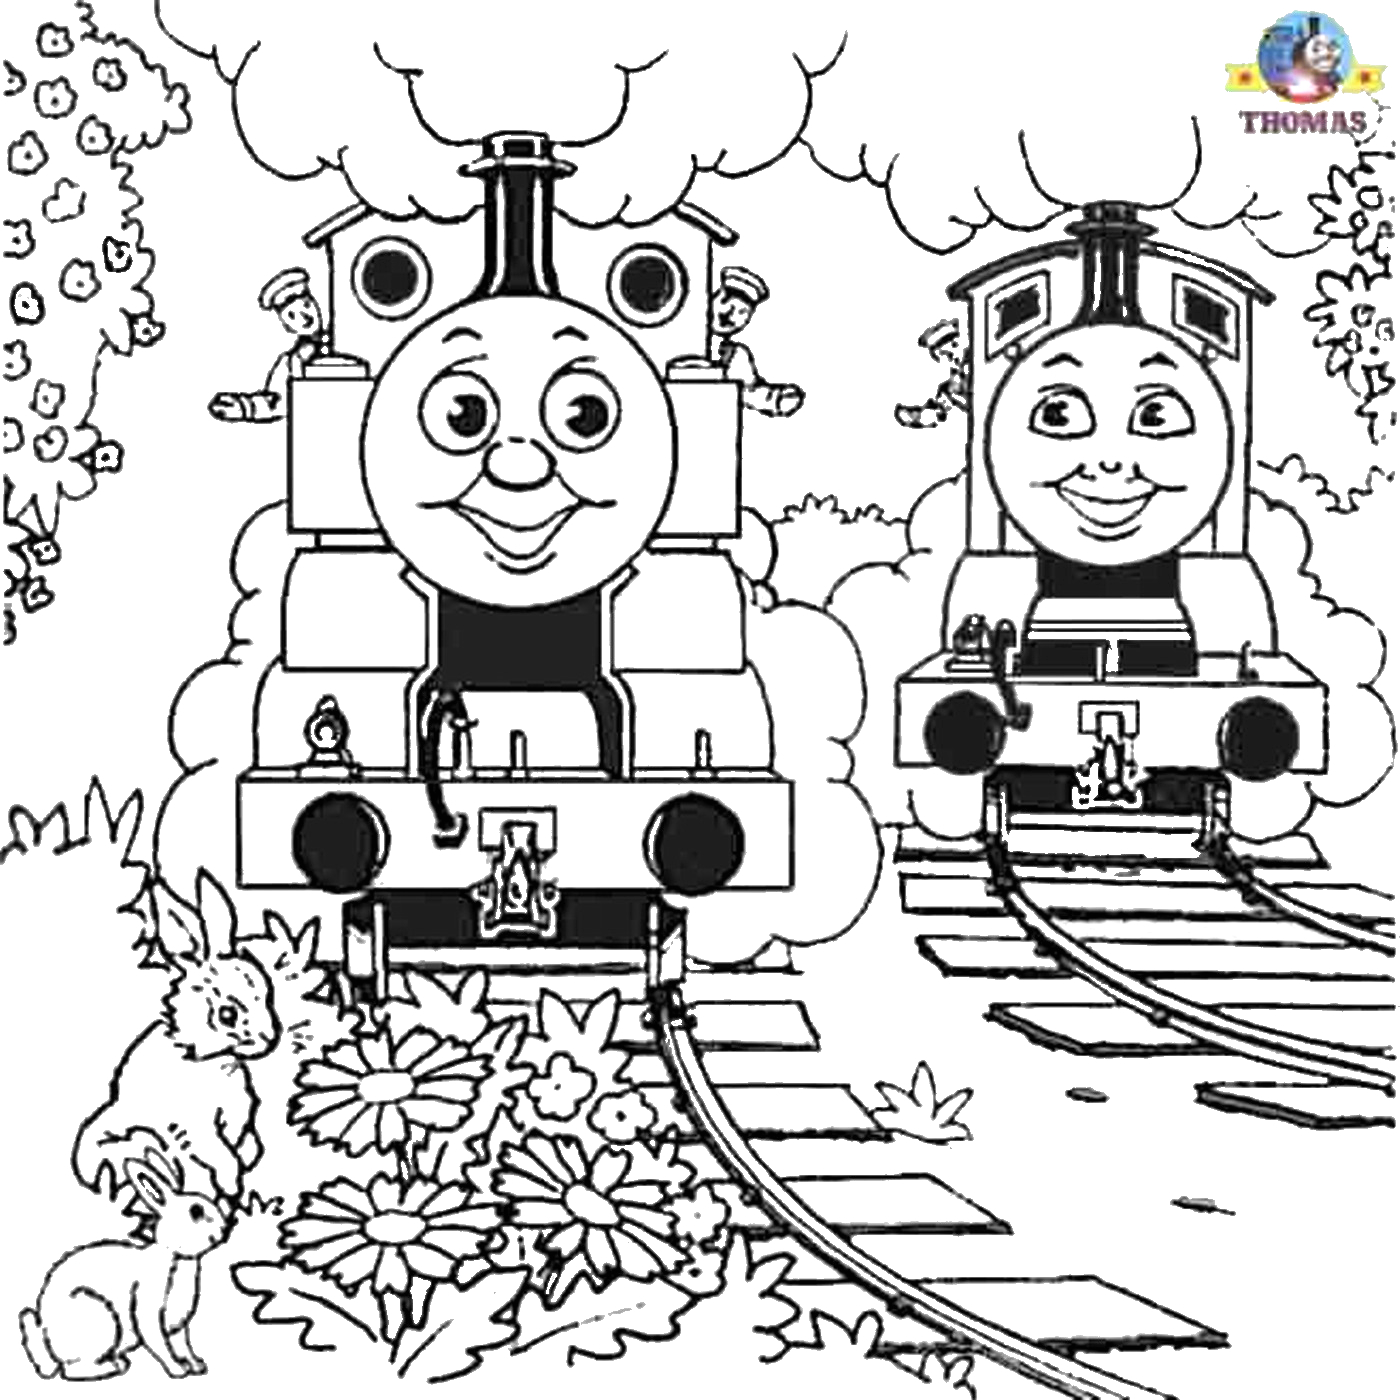 Thomas the Tank Engine Coloring Pages Birthday Thomas Birthday Coloring Pages at Getcolorings